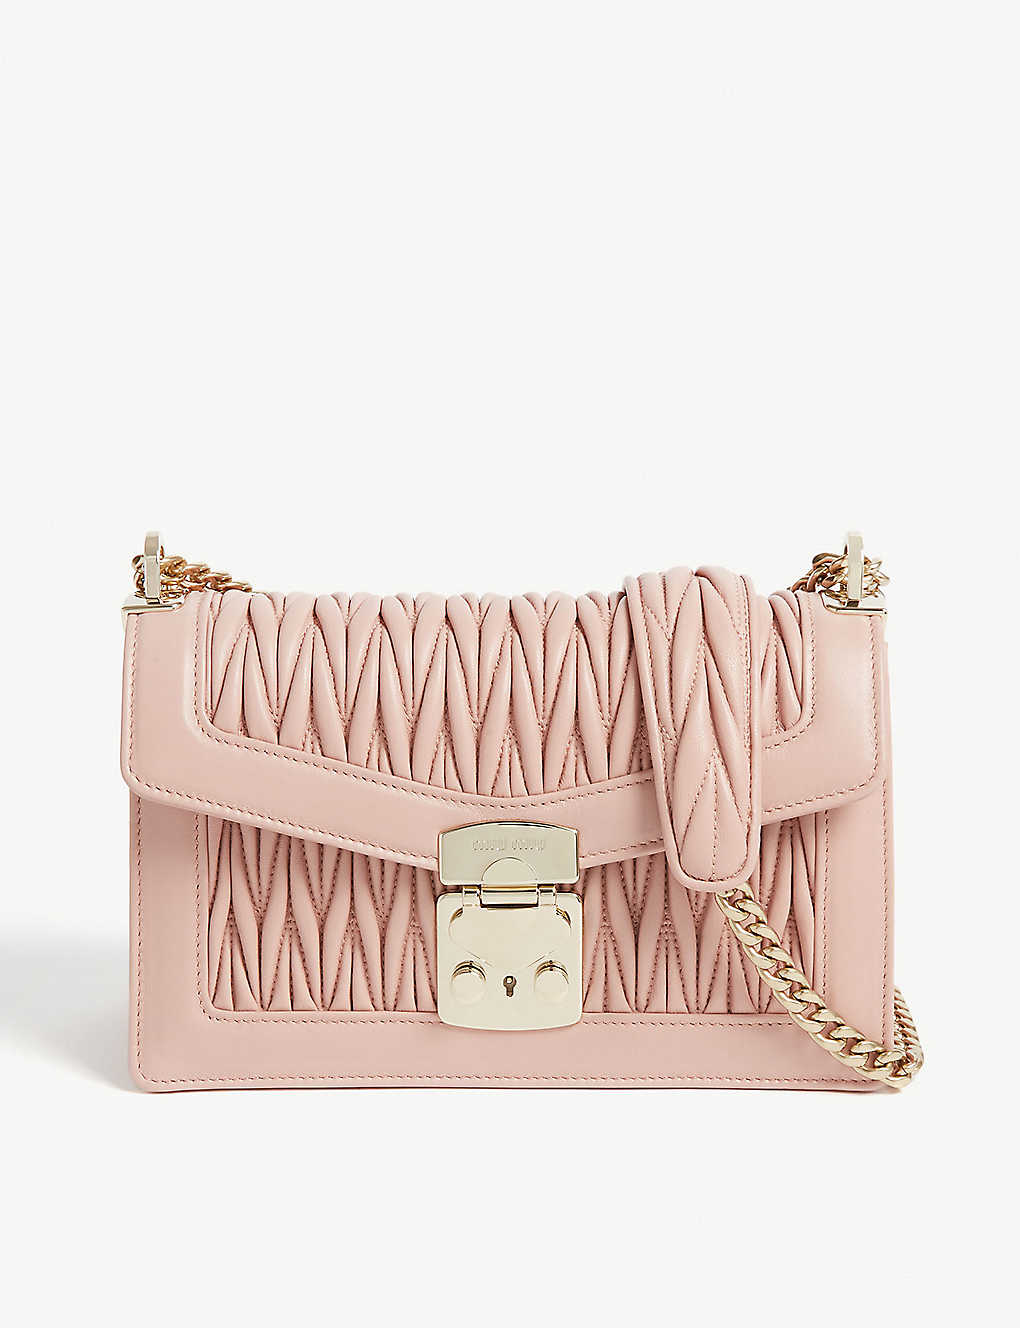 776eefaa7d3a MIU MIU - Confidential leather shoulder bag